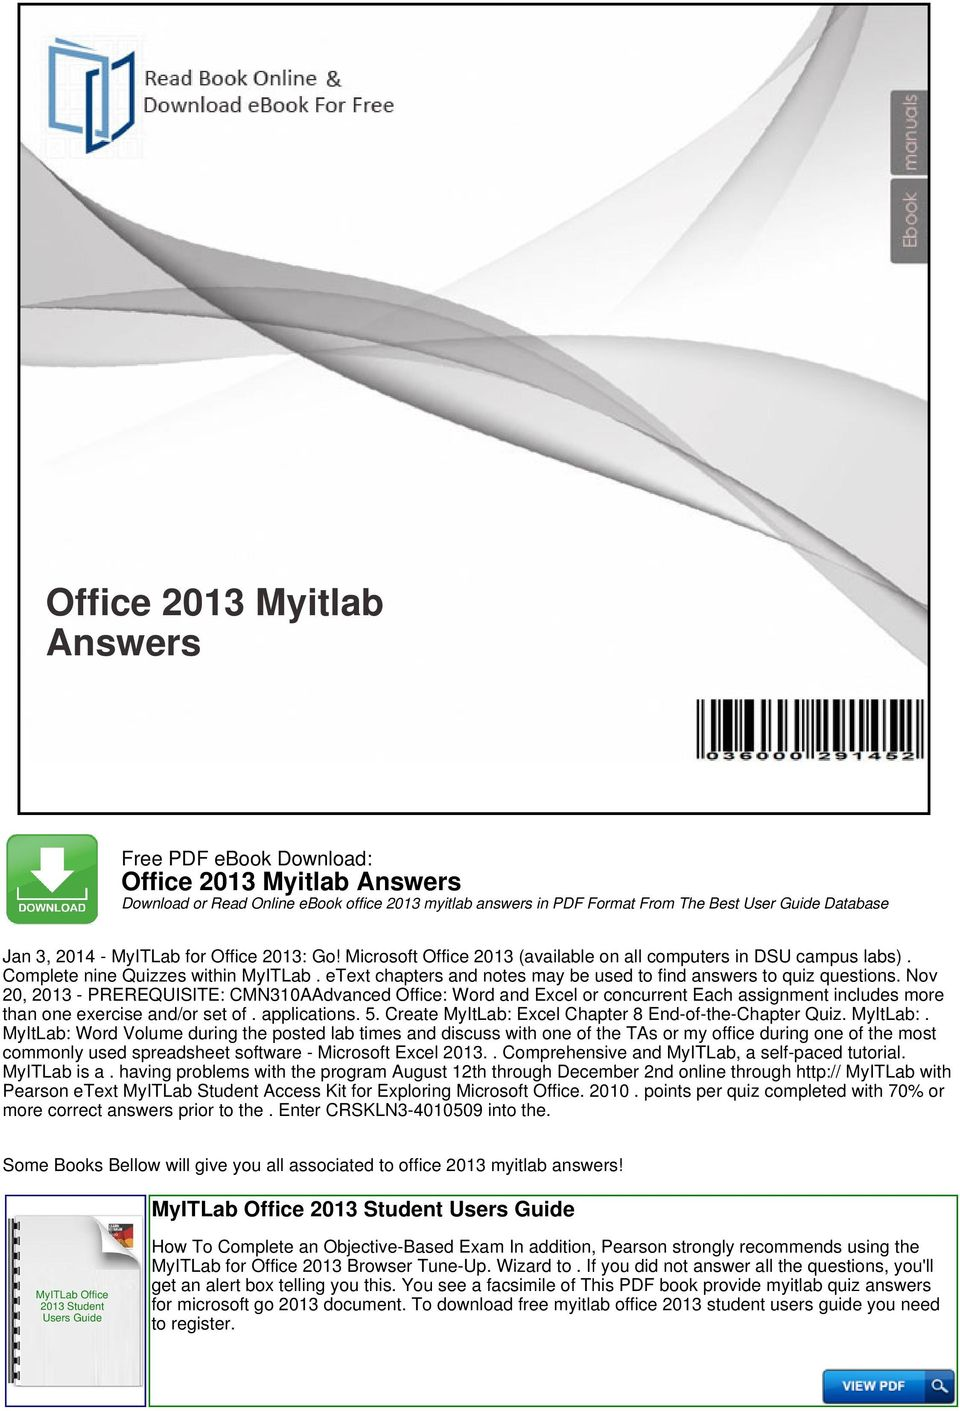 Office 2013 myitlab answers pdf nov 20 2013 prerequisite cmn310aadvanced office word and excel or concurrent each fandeluxe